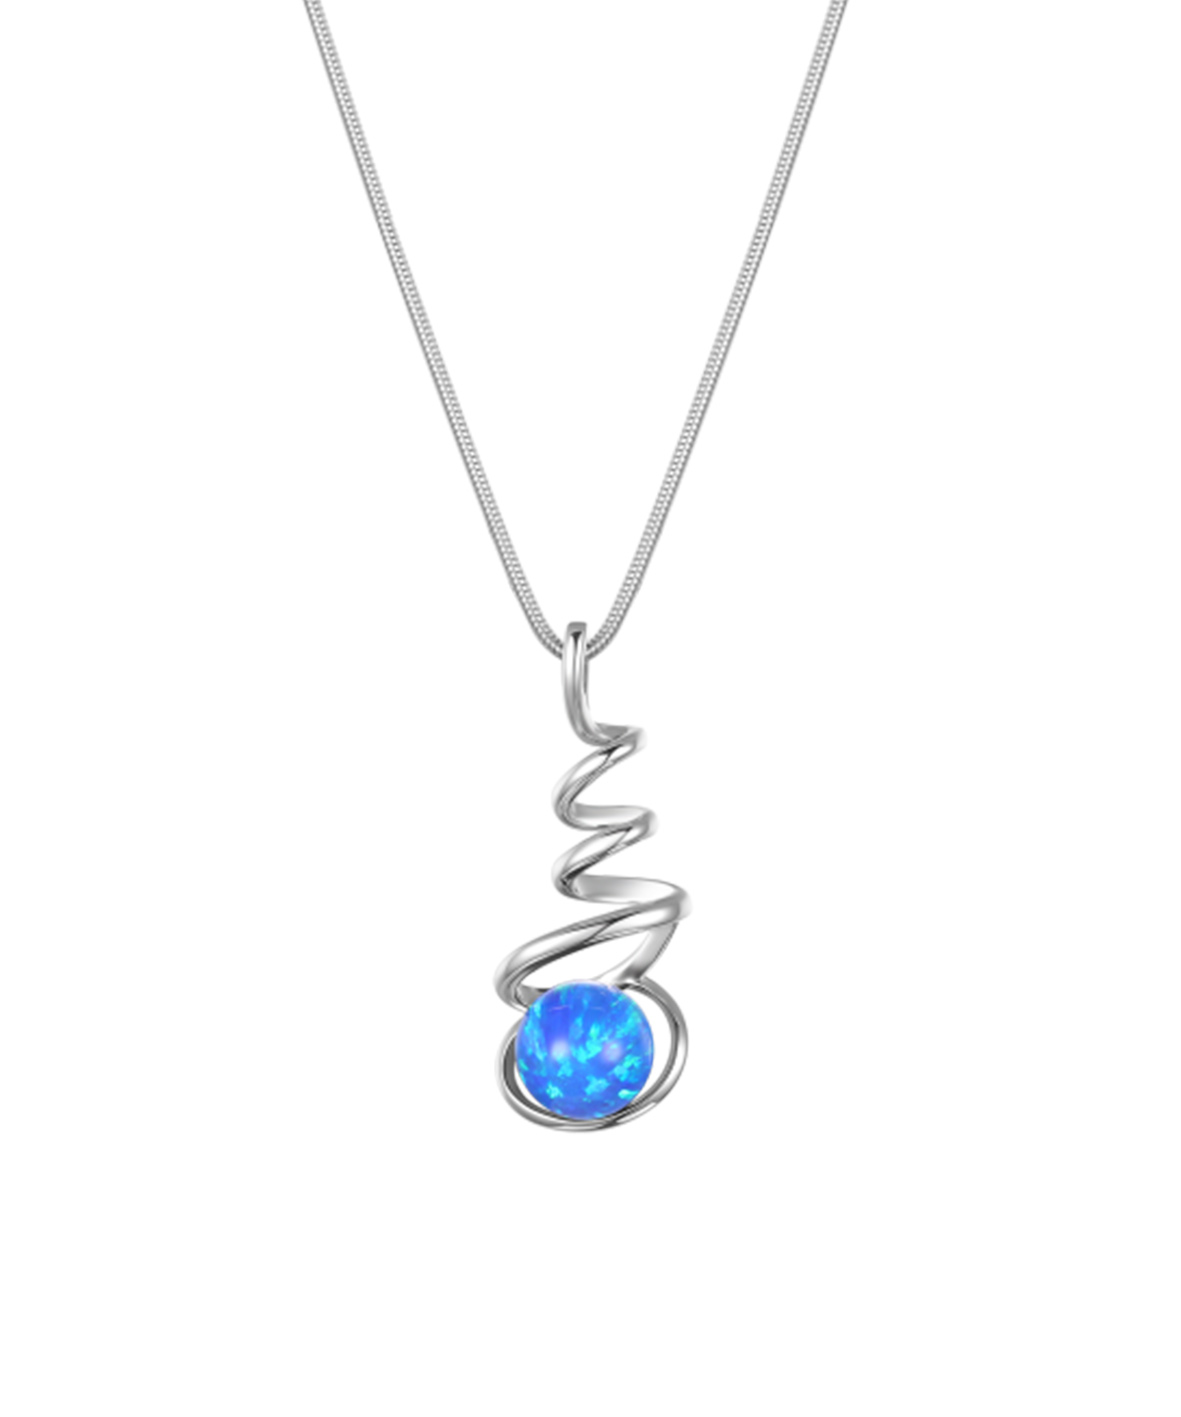 Spiral Opal Necklace